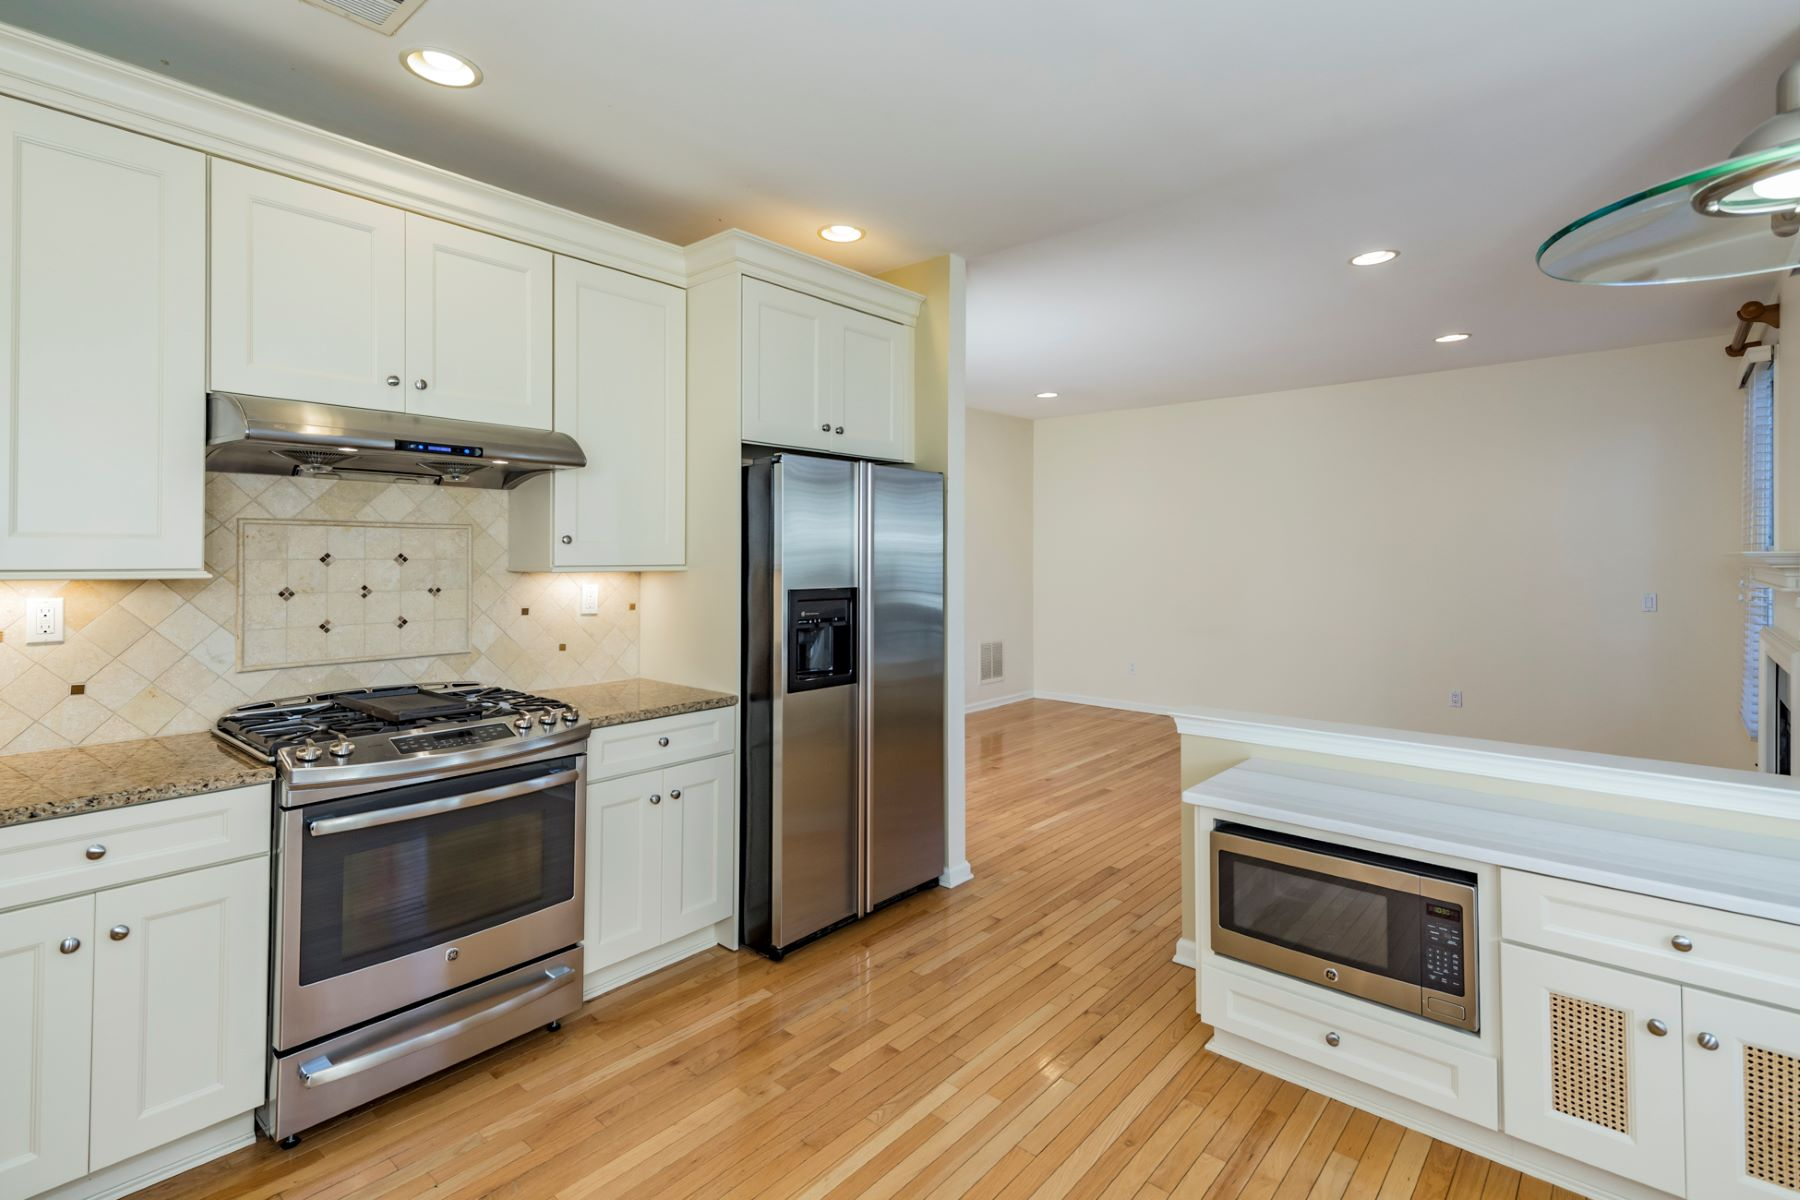 Additional photo for property listing at A Delightful End-Unit In Patriot Hill 244 Patriot Hill Drive, Basking Ridge, New Jersey 07920 United States